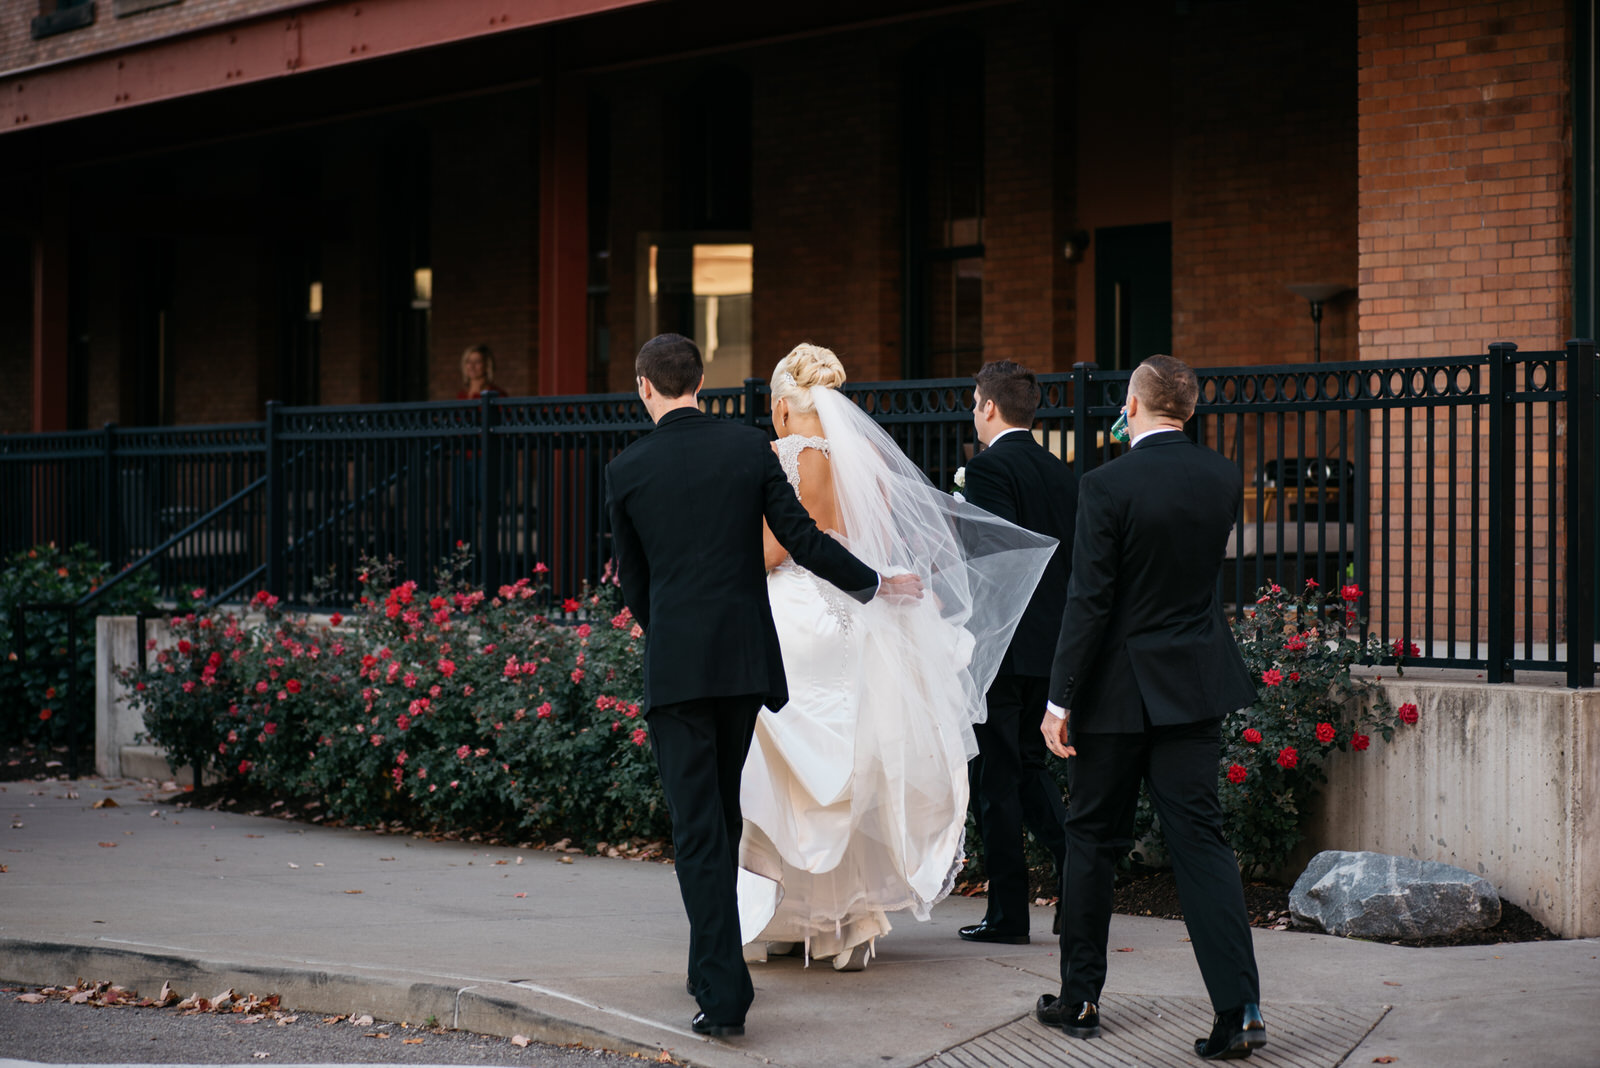 hilton_garden_inn_southpointe_pittsburgh_weddings_74.jpg